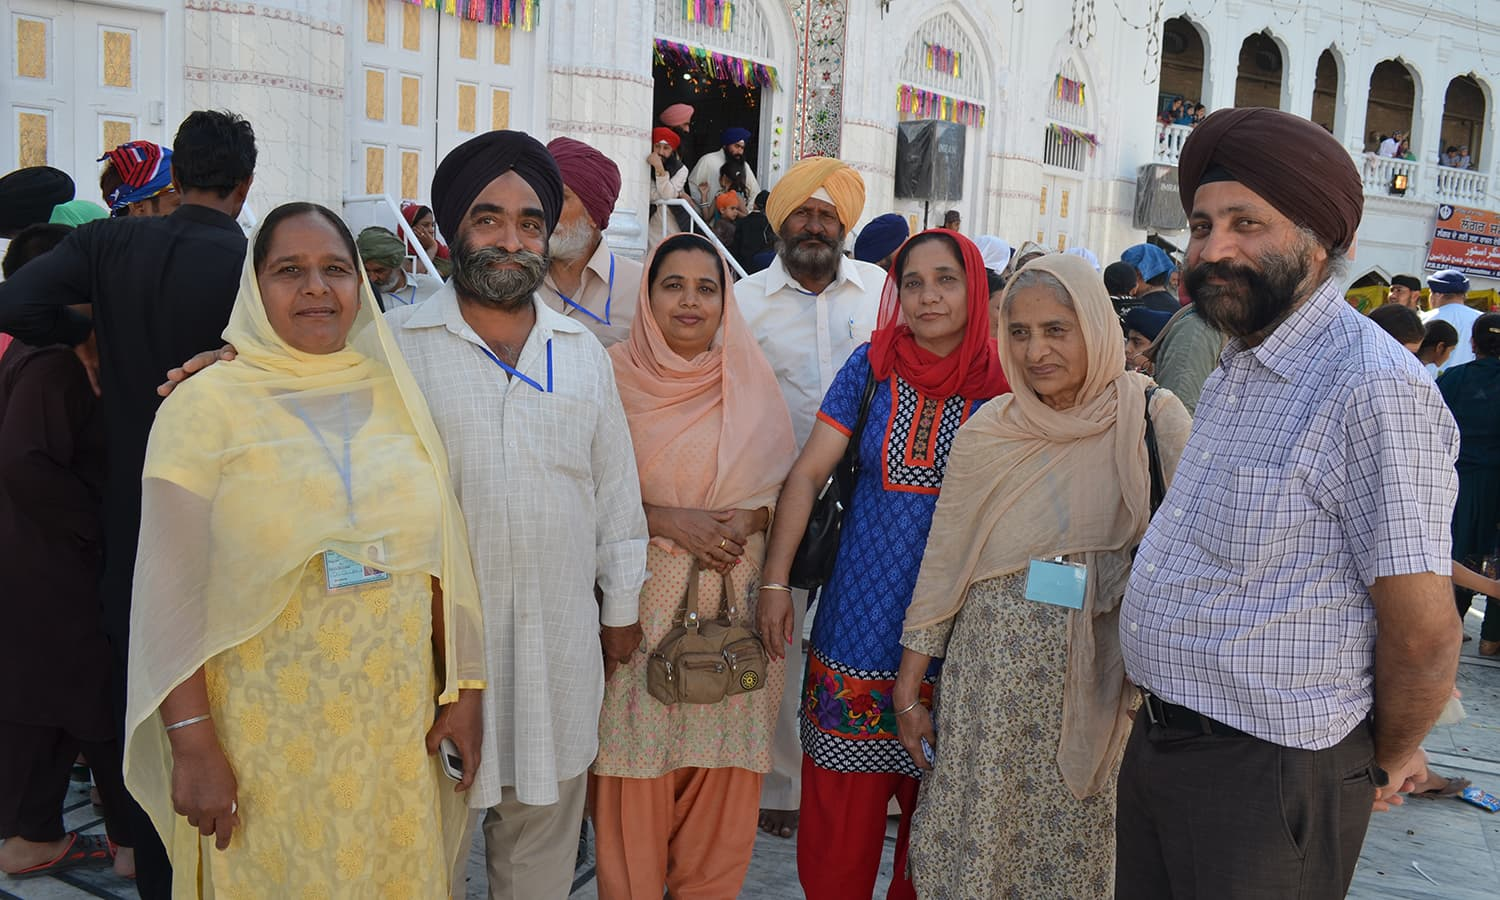 Pertab Singh, 58, is visiting Pakistan with his wife.